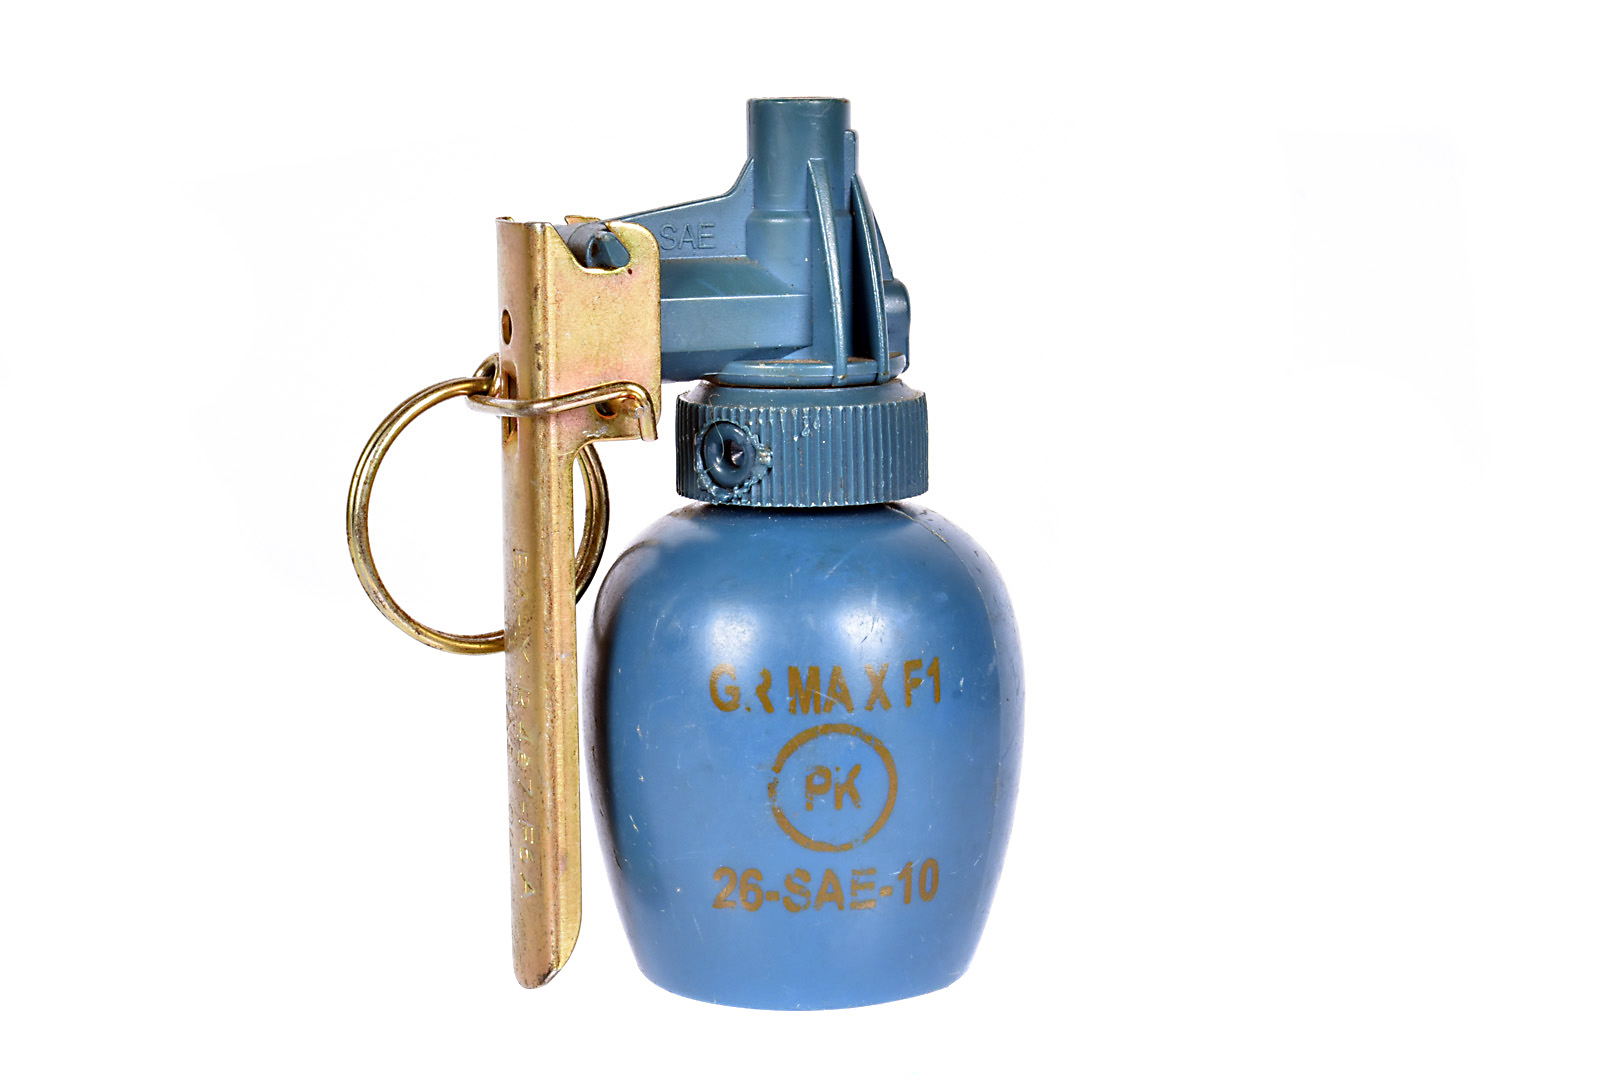 An inert French M51 practice grenade, having blue body with stamp, complete with spoon and pin, also